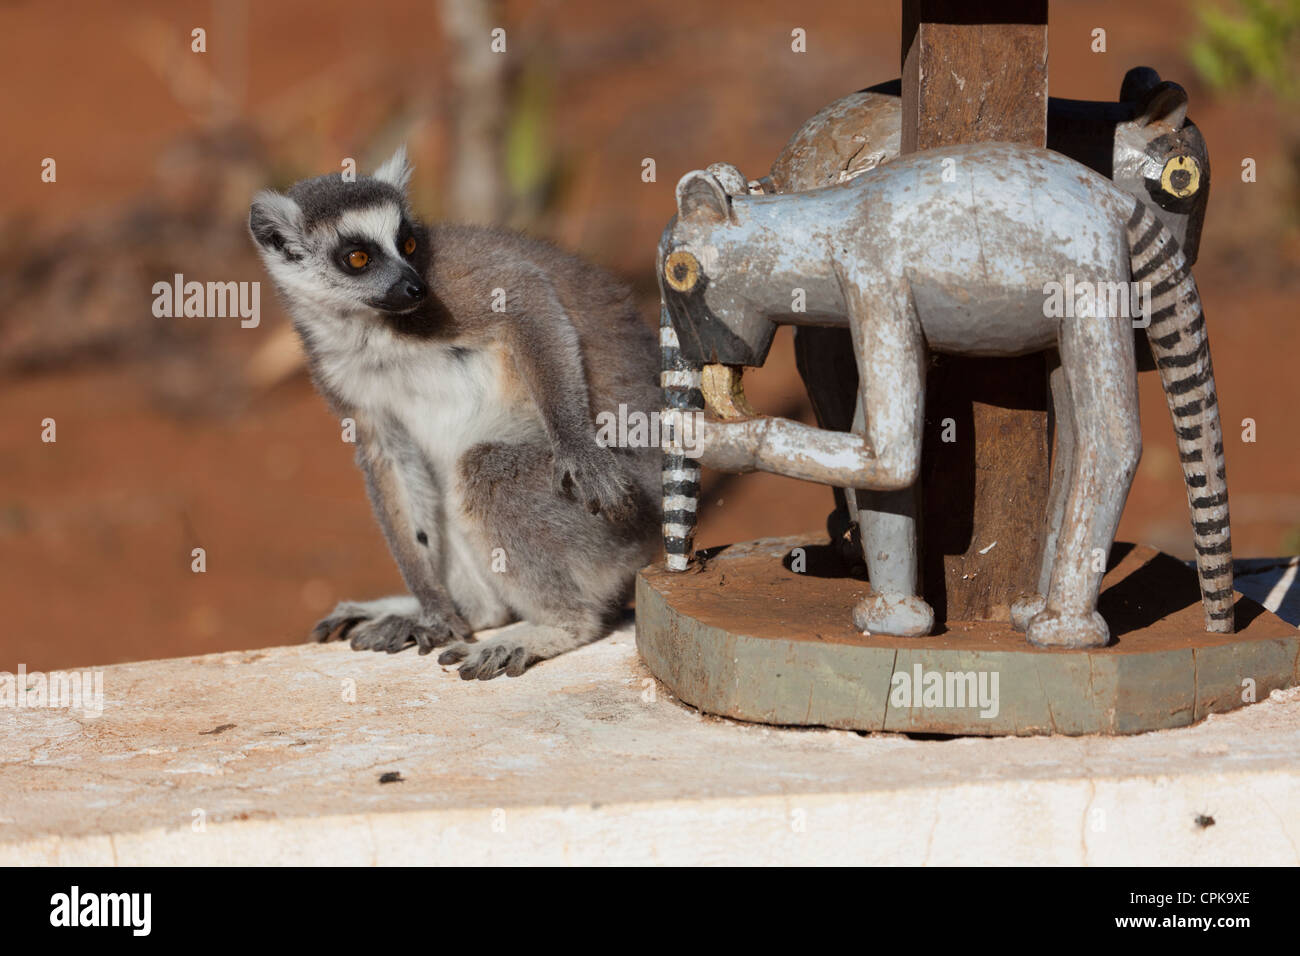 wild ring-tailed lemur (Lemur catta) posing with wooden carving of ring-tailed lemur - Stock Image